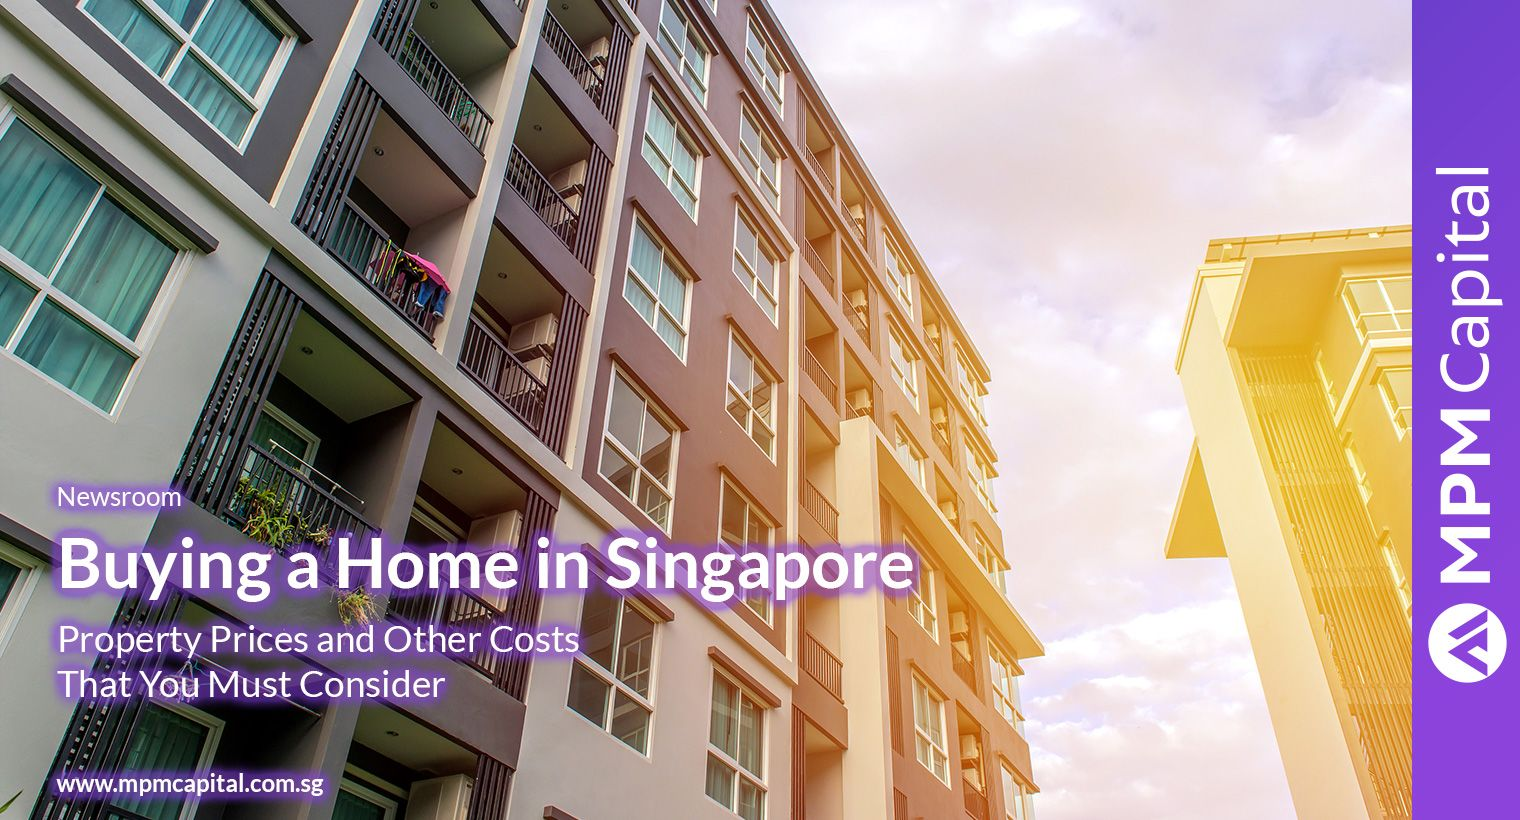 MPM Capital Buying-a-Home-in-Singapore-Property-Prices-and-Other-Costs-That-You-Must-Consider